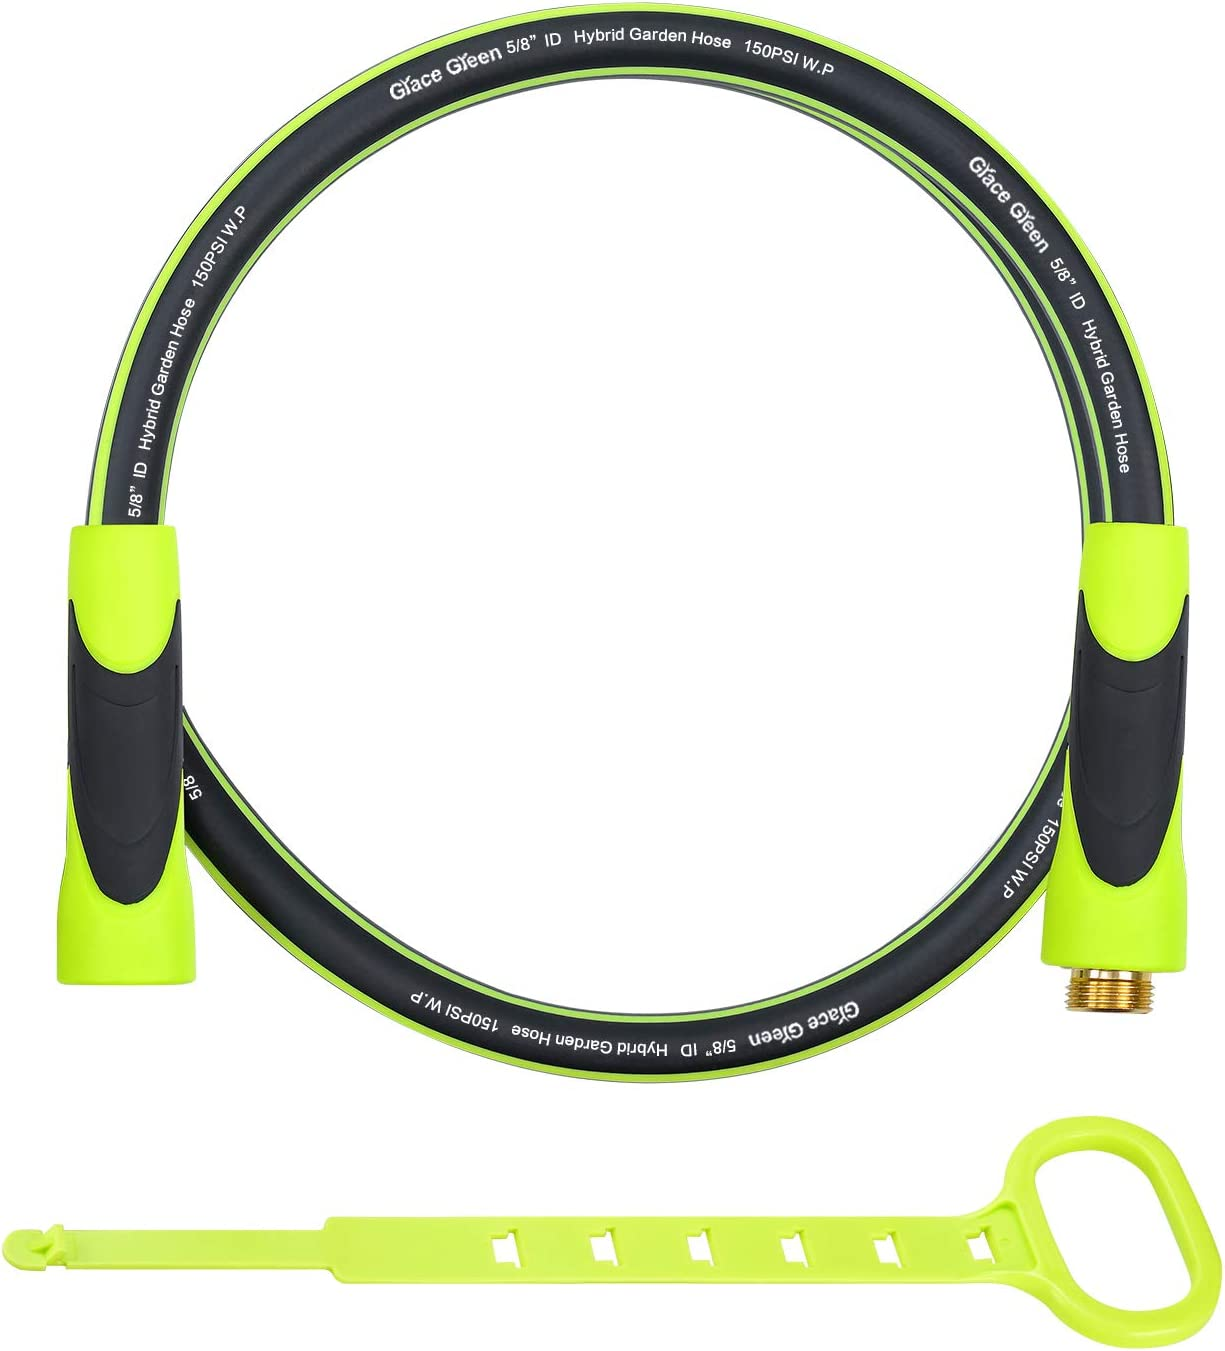 Grace Green Lead in Hose,Hybrid 5/8 in.×5FT Short Garden Hose, Extension Hose, Both End SwivelGrip, Heavy Duty, Light Weight, Flexible